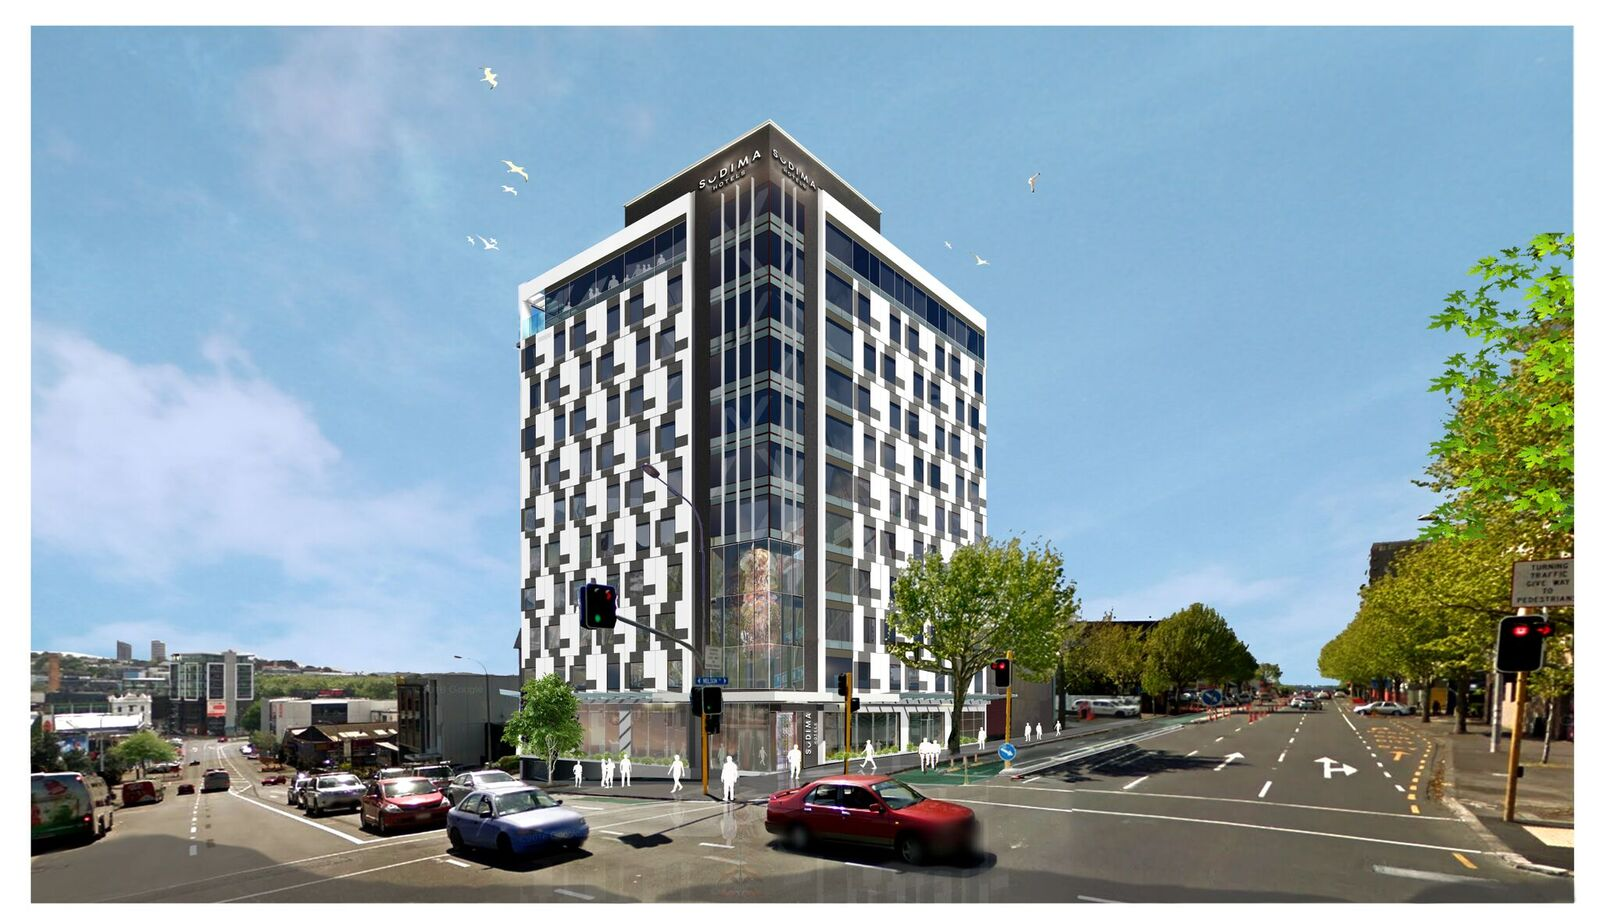 Artist's impression of the Auckland CBD Sudima hotel at daytime.